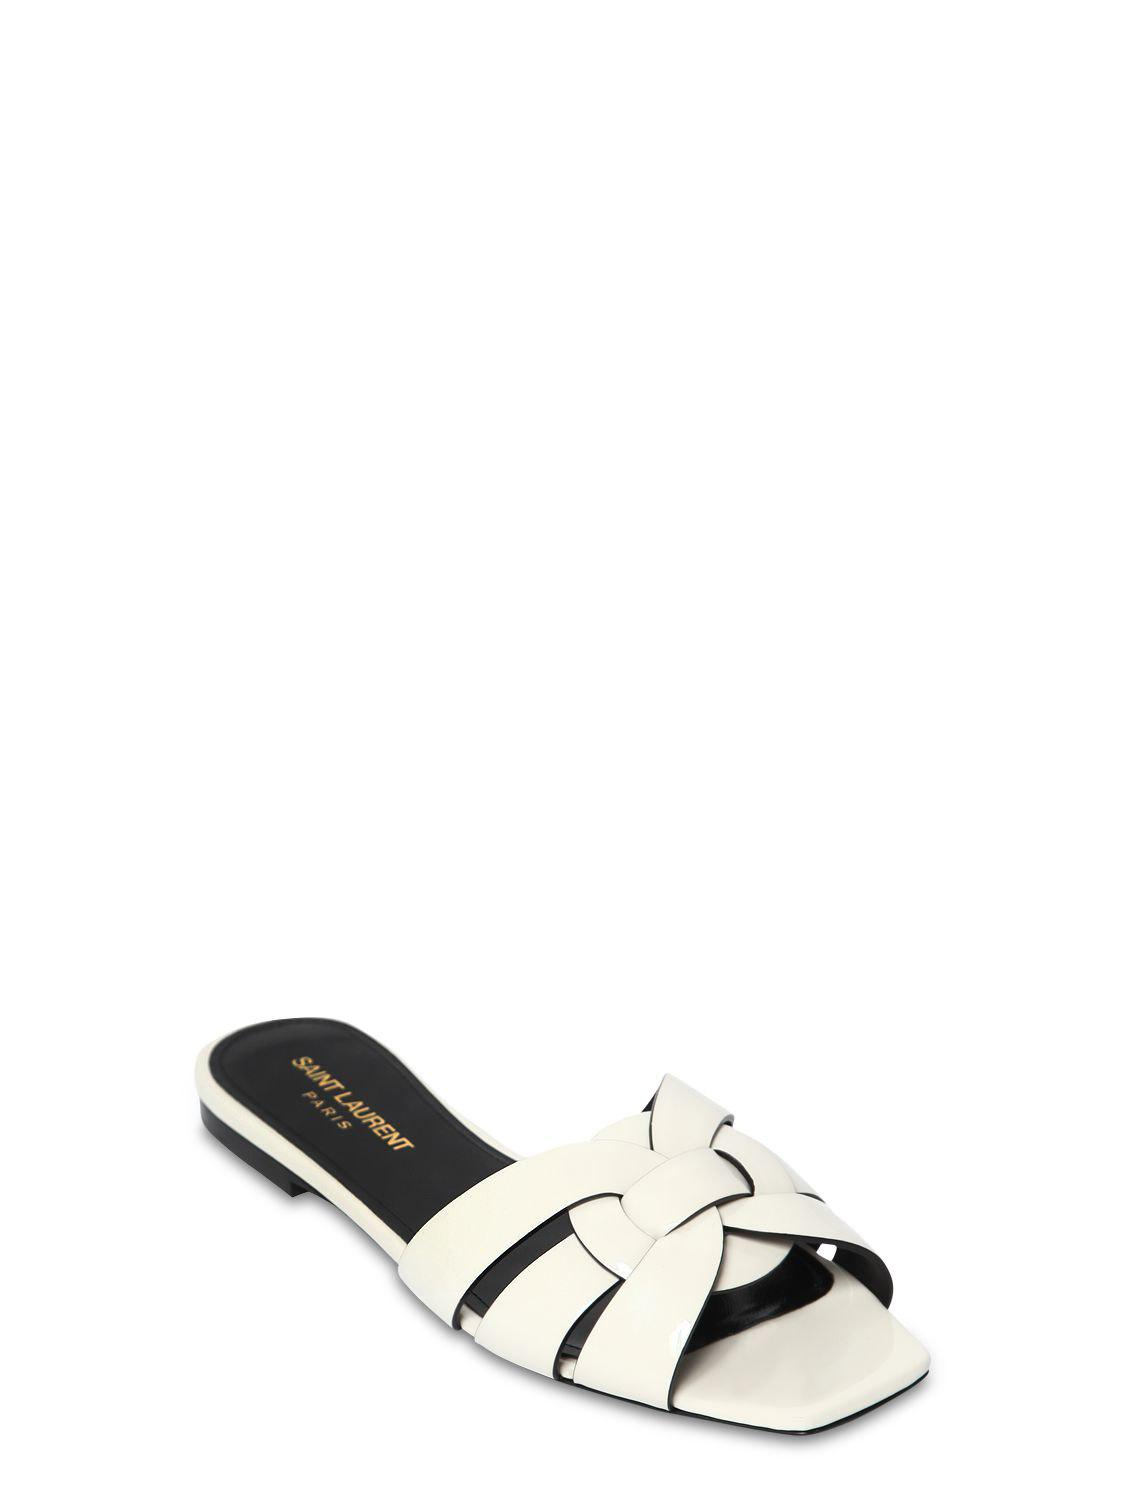 f0ed1fd8fb42 Saint Laurent Boots Flat Tribute 105 in White - Save 51% - Lyst